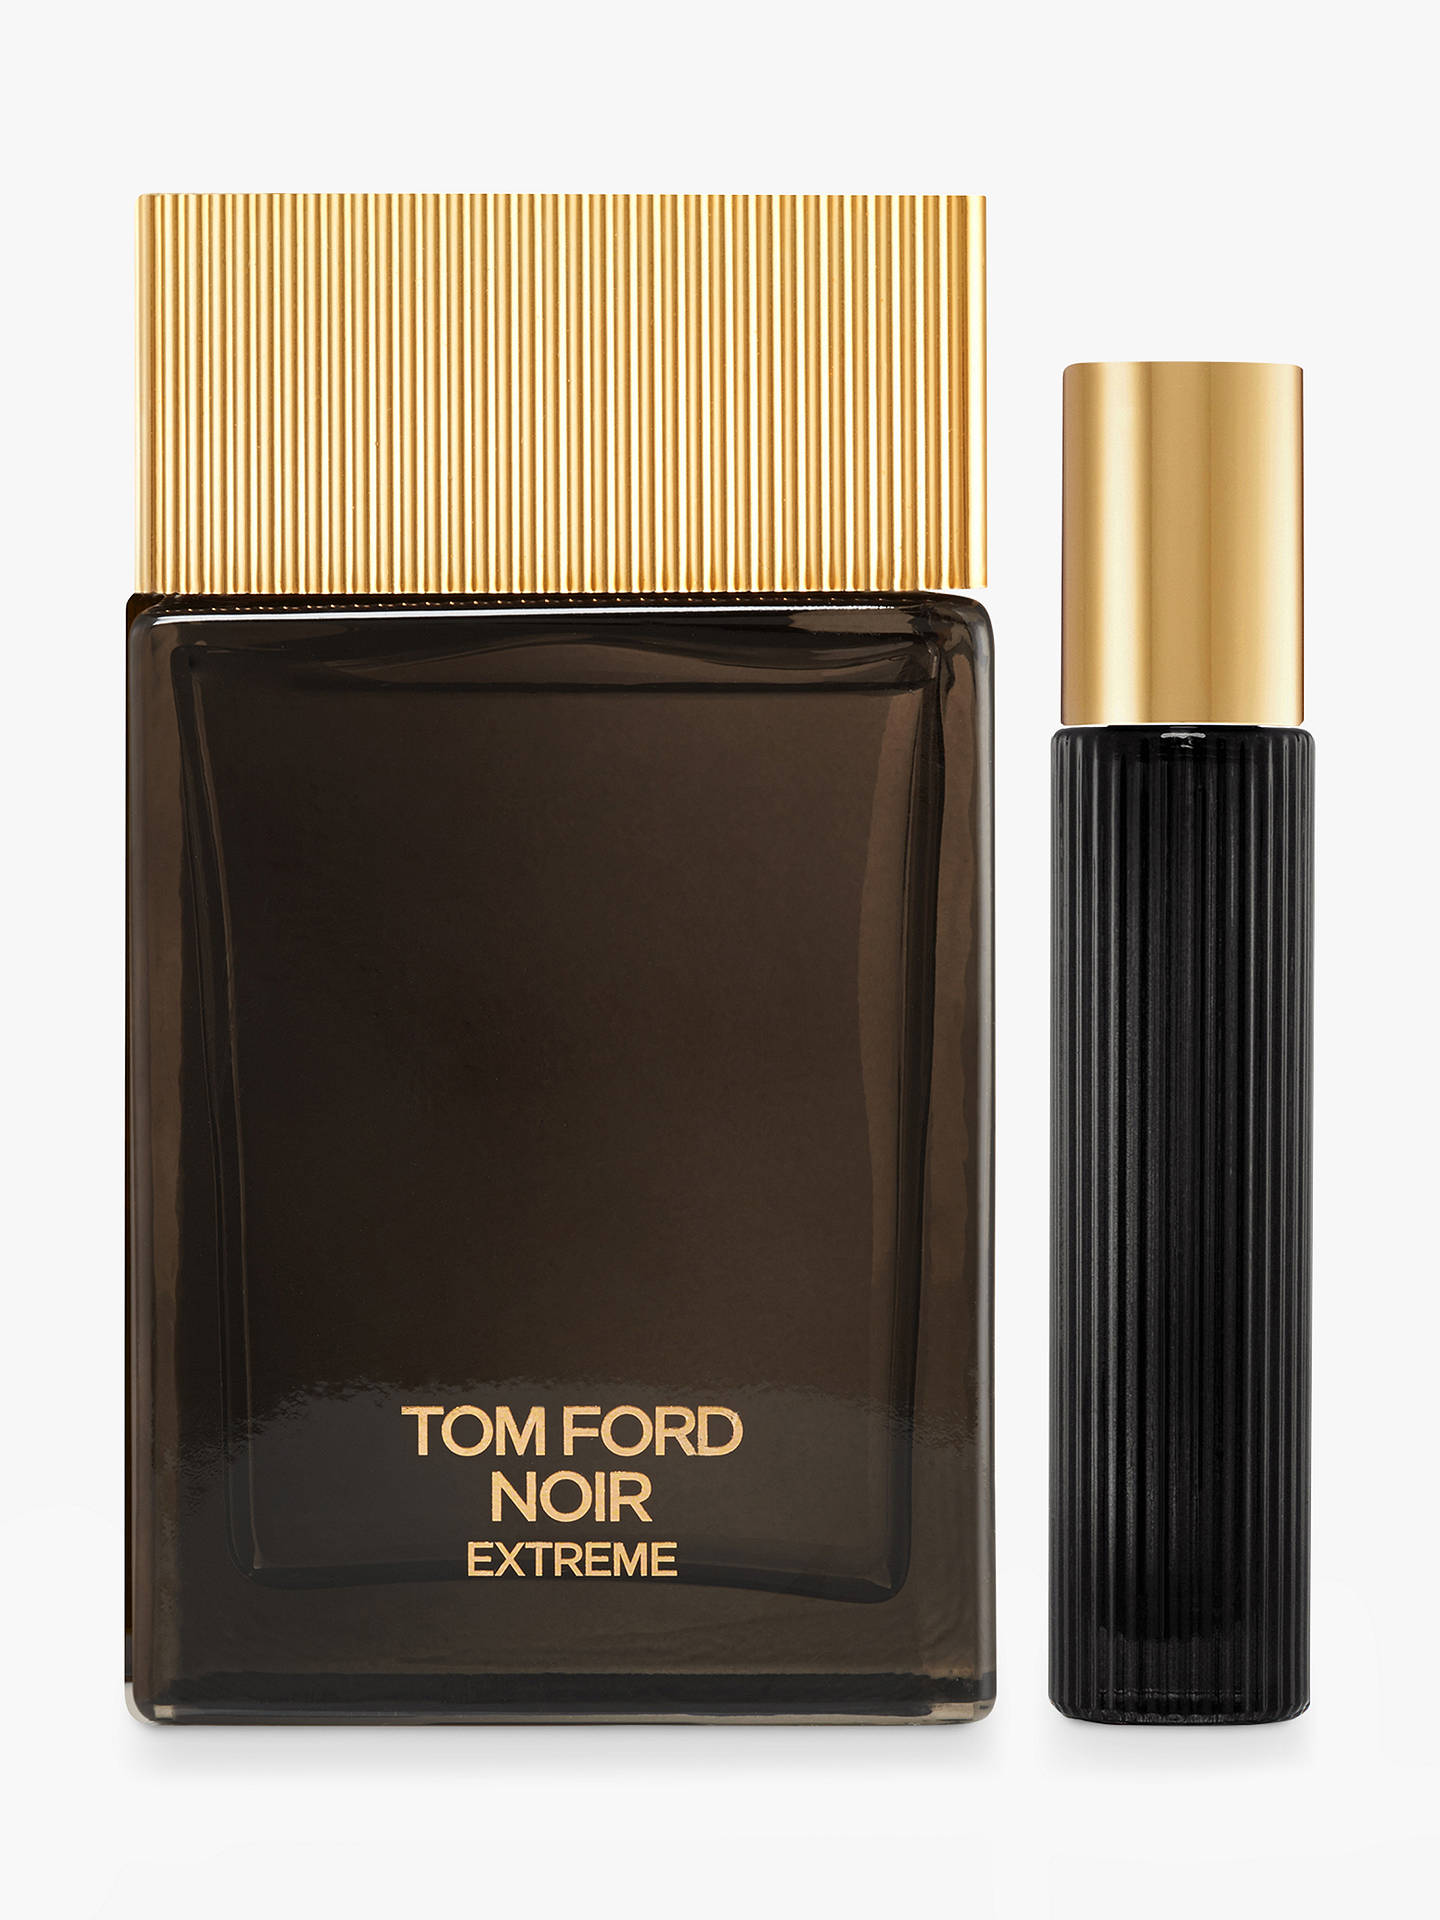 Buy TOM FORD Noir Extreme Collection 100ml Eau de Parfum Gift Set Online at johnlewis.com